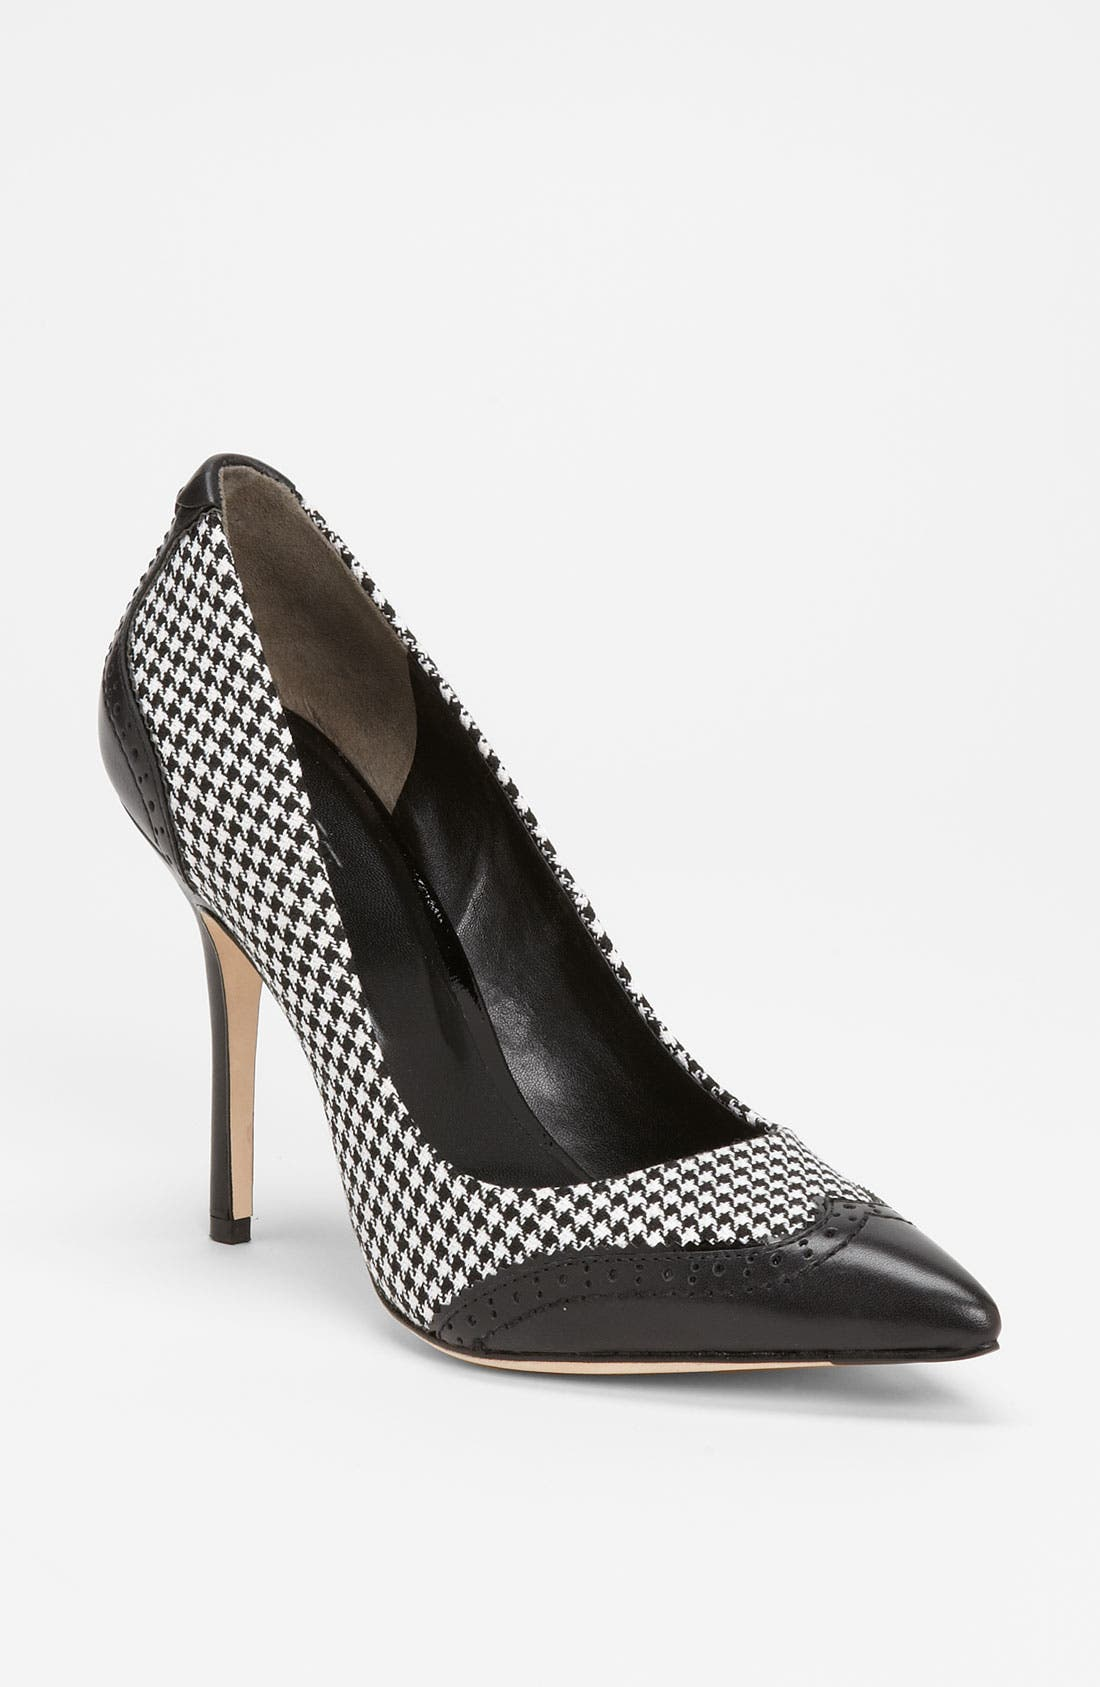 Alternate Image 1 Selected - Rachel Roy 'Ana' Pump